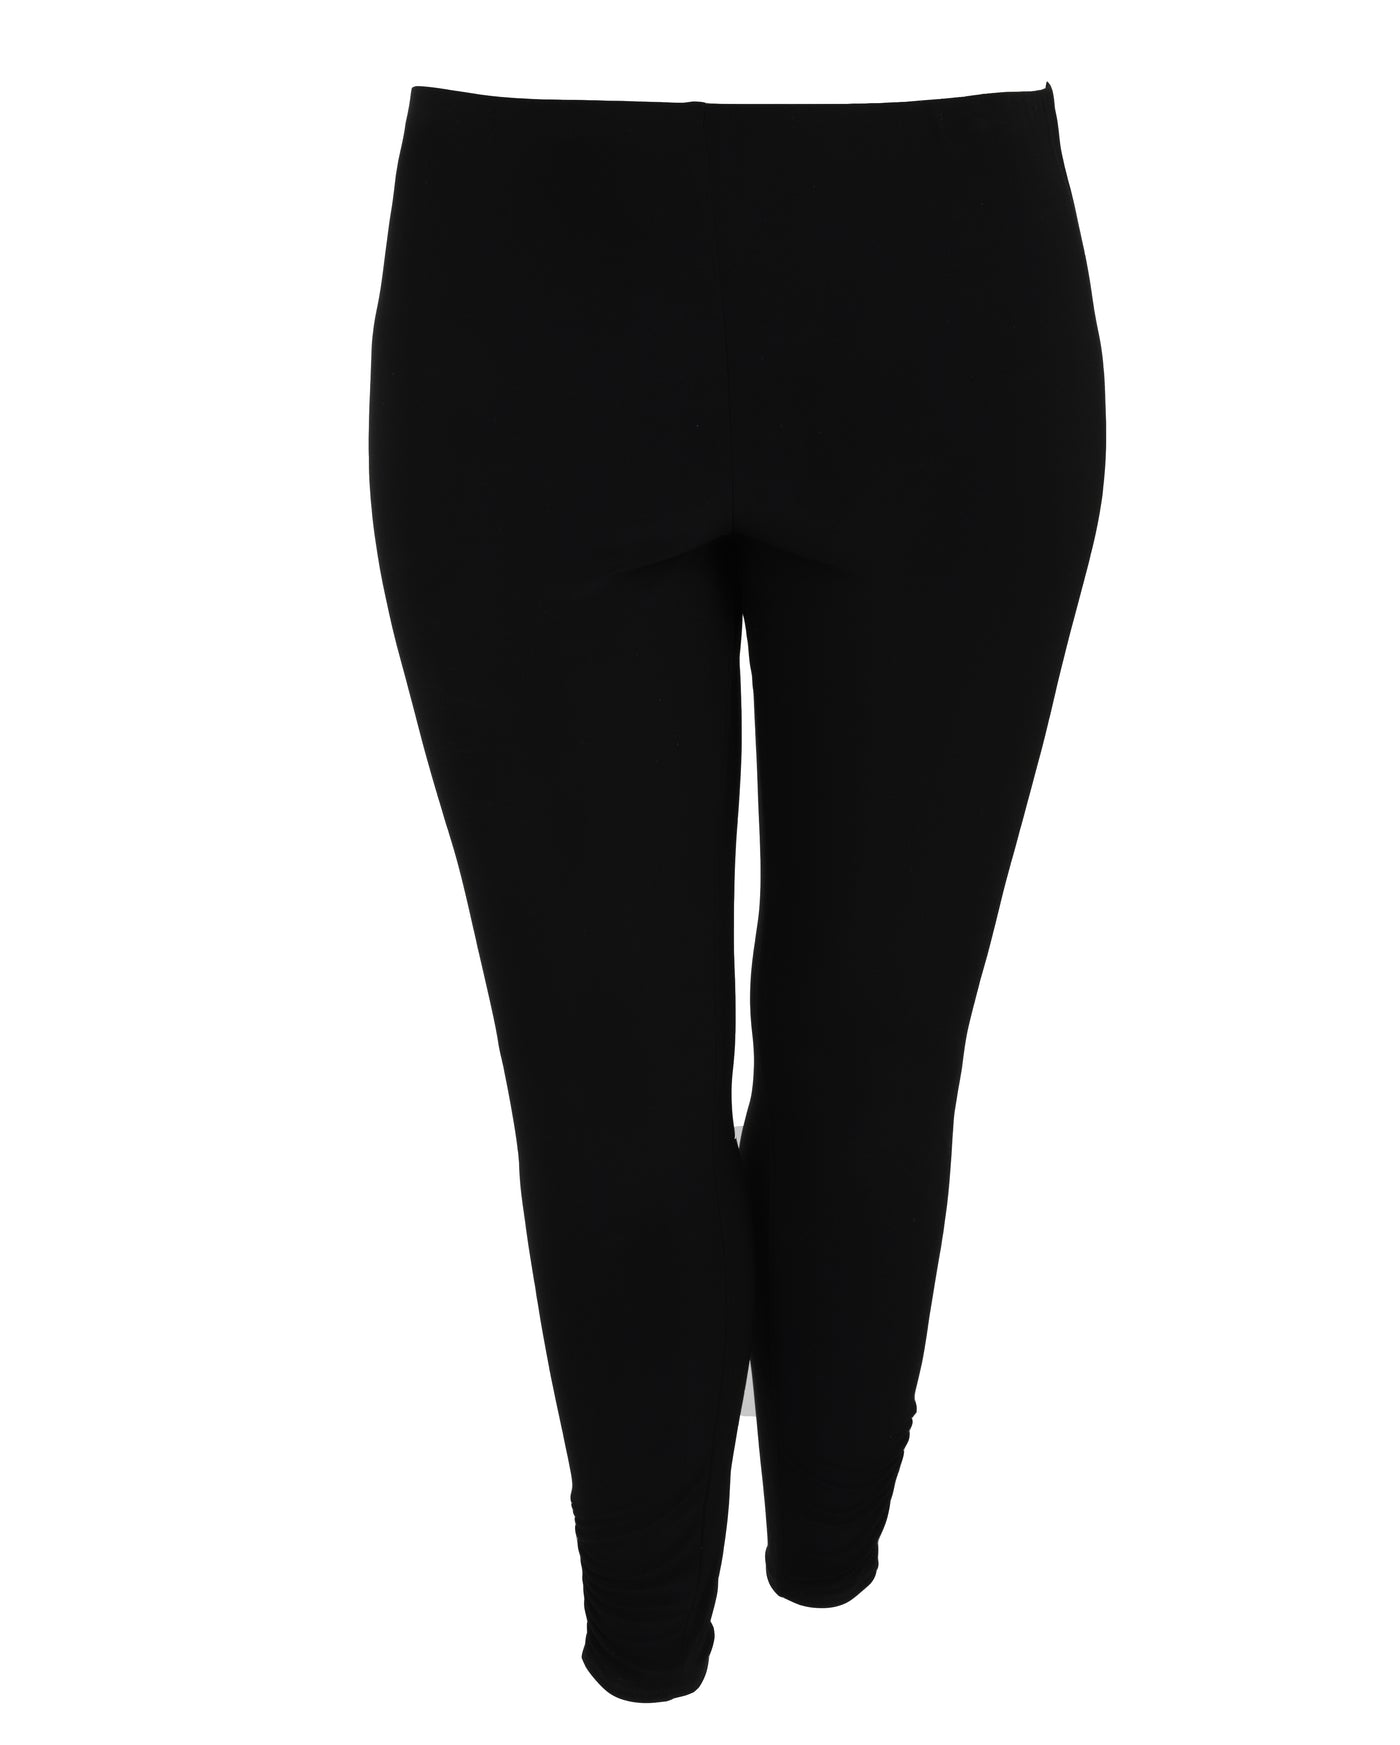 Joseph Ribkoff Ella Jersey Legging with Rouched Bottom